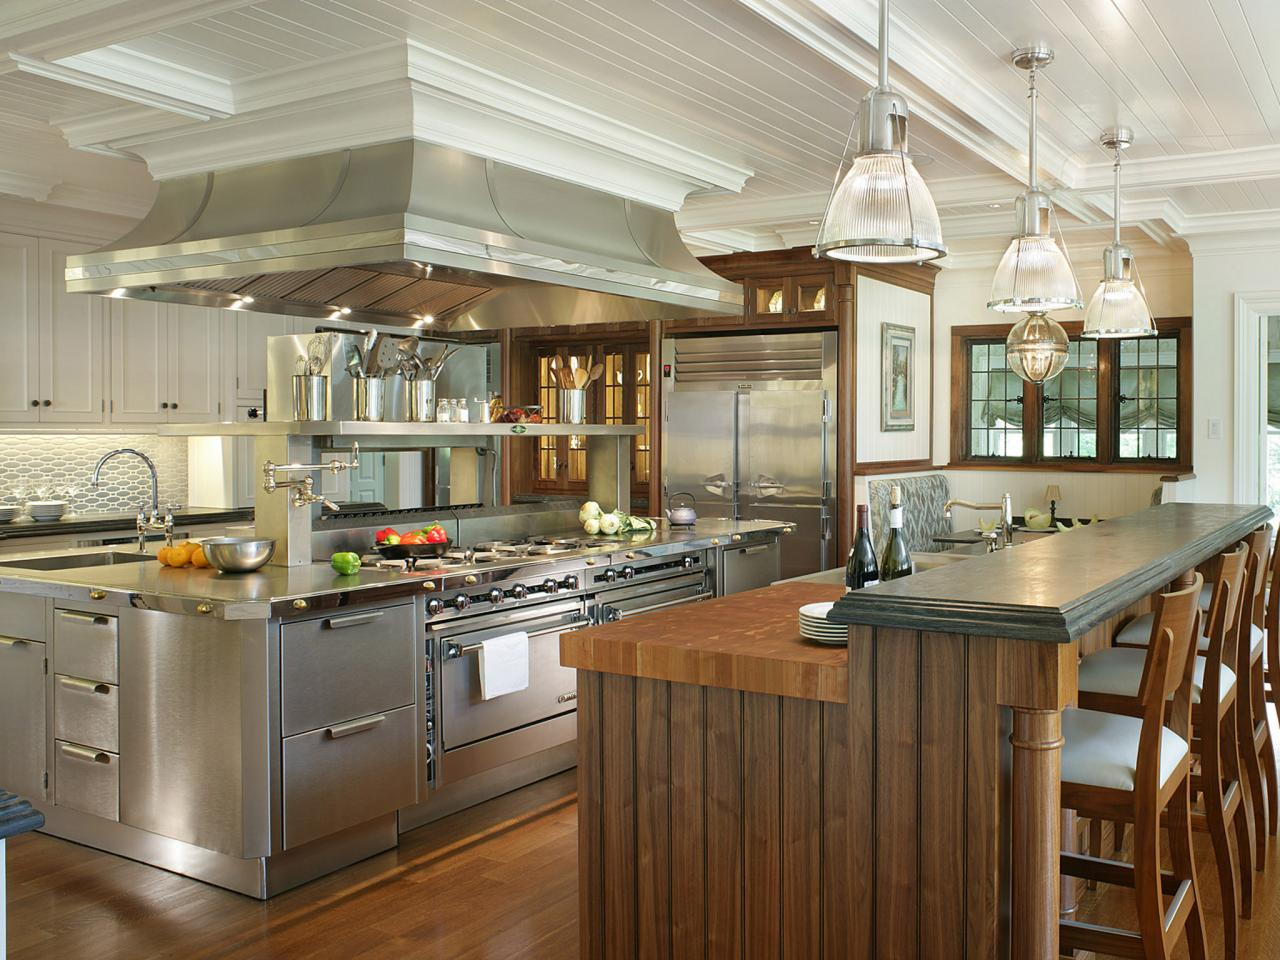 amazing Pic Of Kitchen Design #4: Kitchen Design Styles